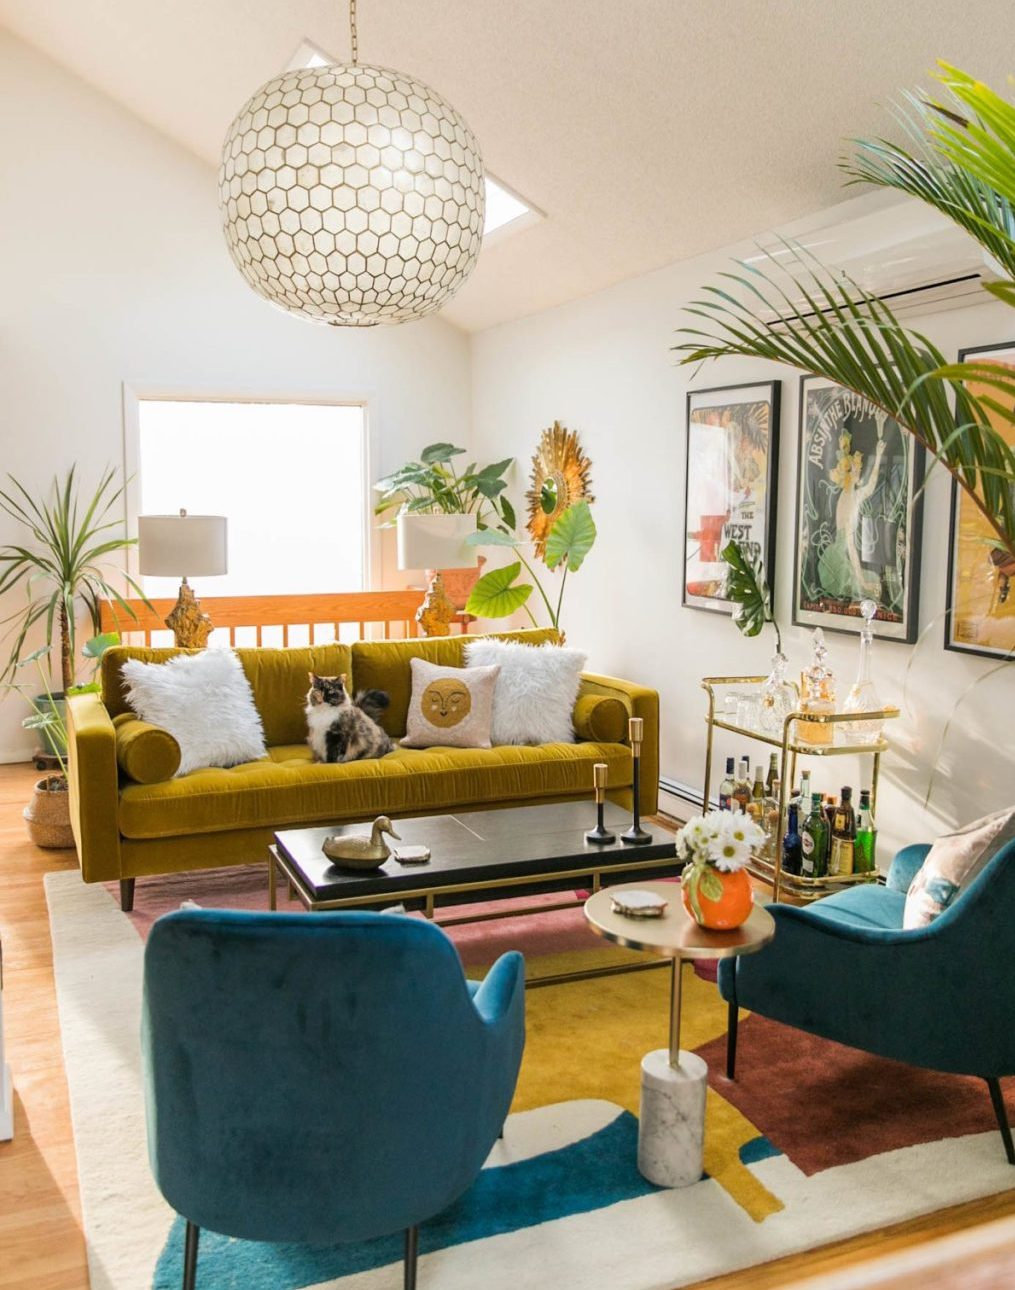 vibrant-mid-century-glam-living-room-refresh-jessica-brigham-x-article-REVEAL-34-scaled